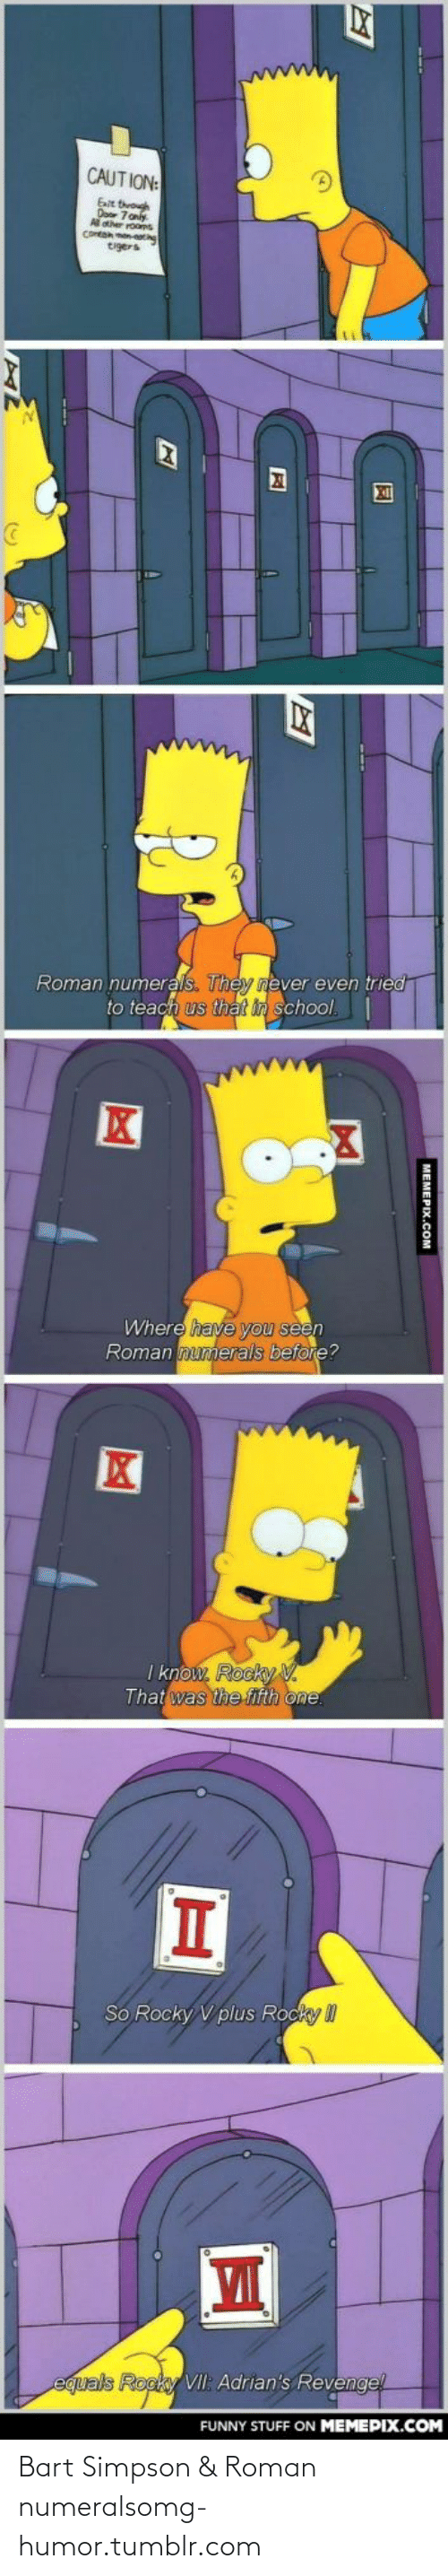 Bart Simpson: CAUTION:  Fat throuh  Kher rooms  tigers  Roman numerals. They never even tried  to teach us that in school.|  Where have you seen  Roman numerals before?  I know. Rocky .  That was the fifth one.  So Rocky V plus Rocky II  equals Rocky VII: Adrian's Revengel  FUNNY STUFF ON MEMEPIX.COM  MEMEPIX.COM Bart Simpson & Roman numeralsomg-humor.tumblr.com